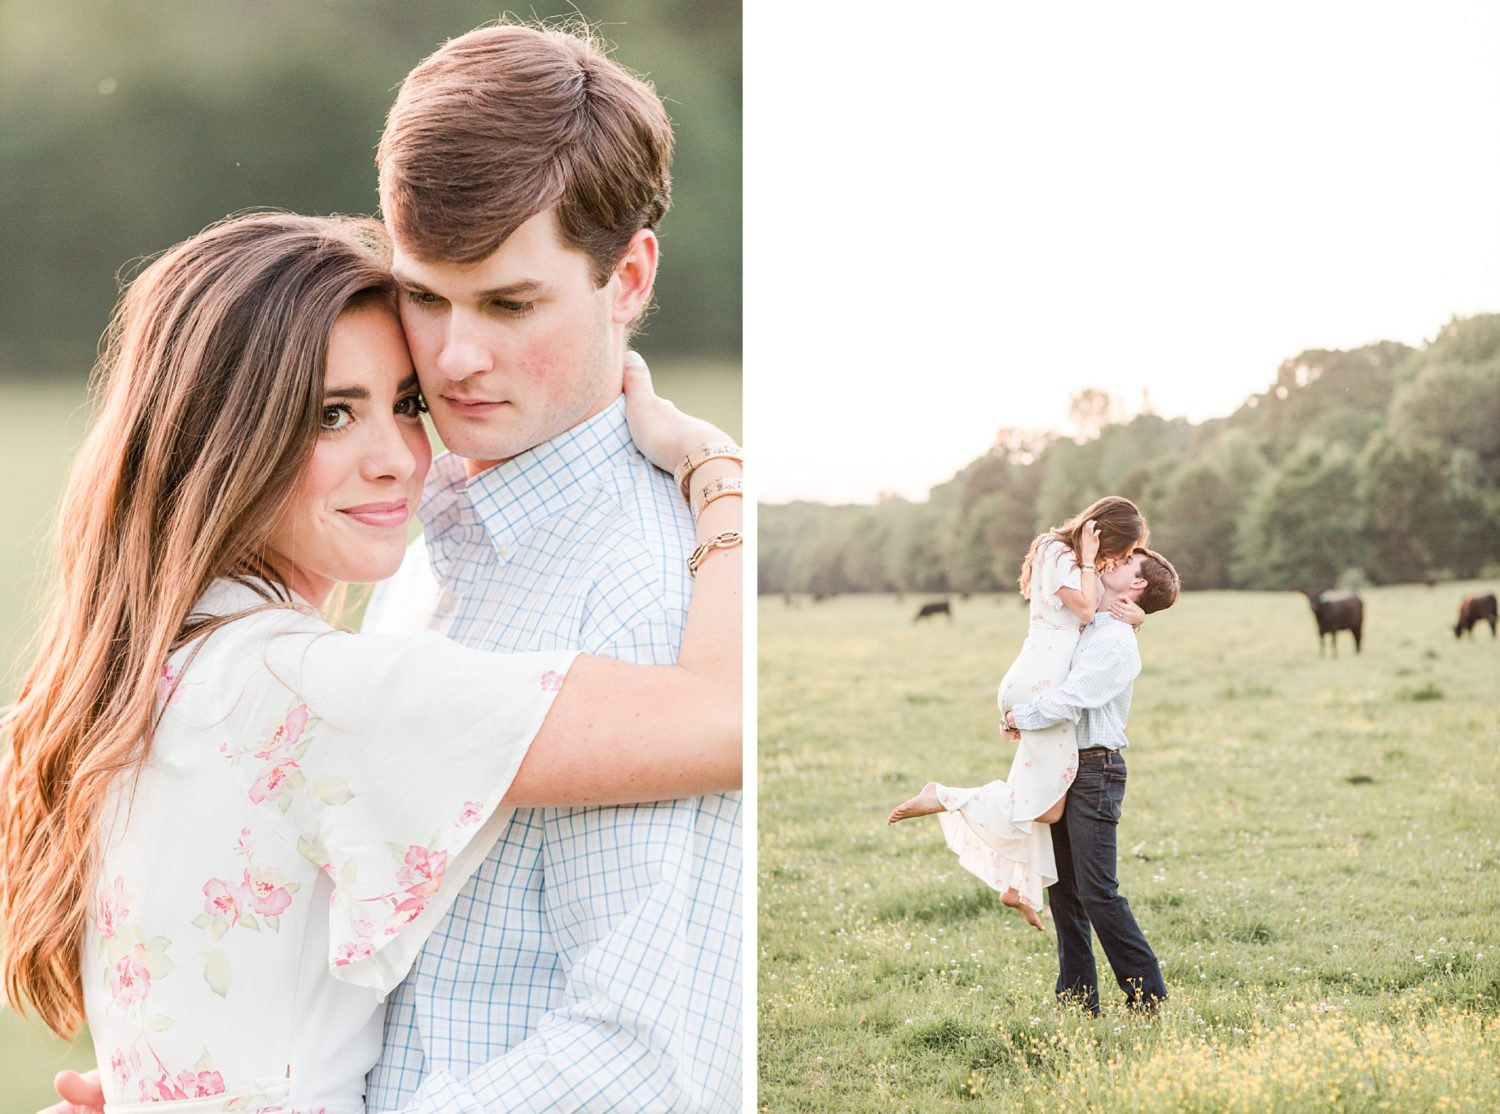 http://amy-hutchinson.com/wp-content/uploads/2018/05/ahp-summer-tennessee-farm-engagement_0036.jpg